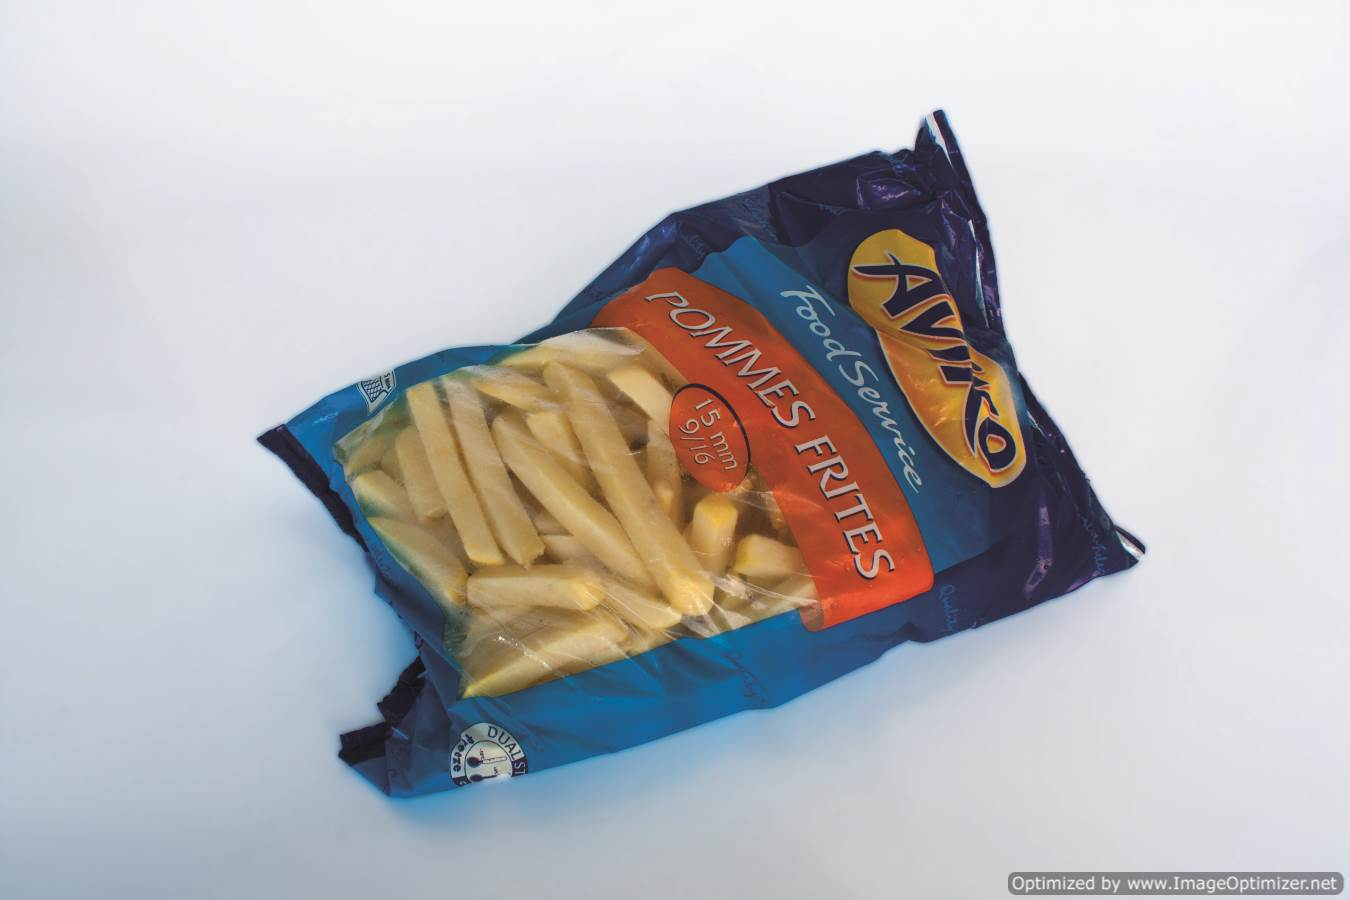 Image of Aviko 9/16 (15mm) Chips BAG 2.27kg